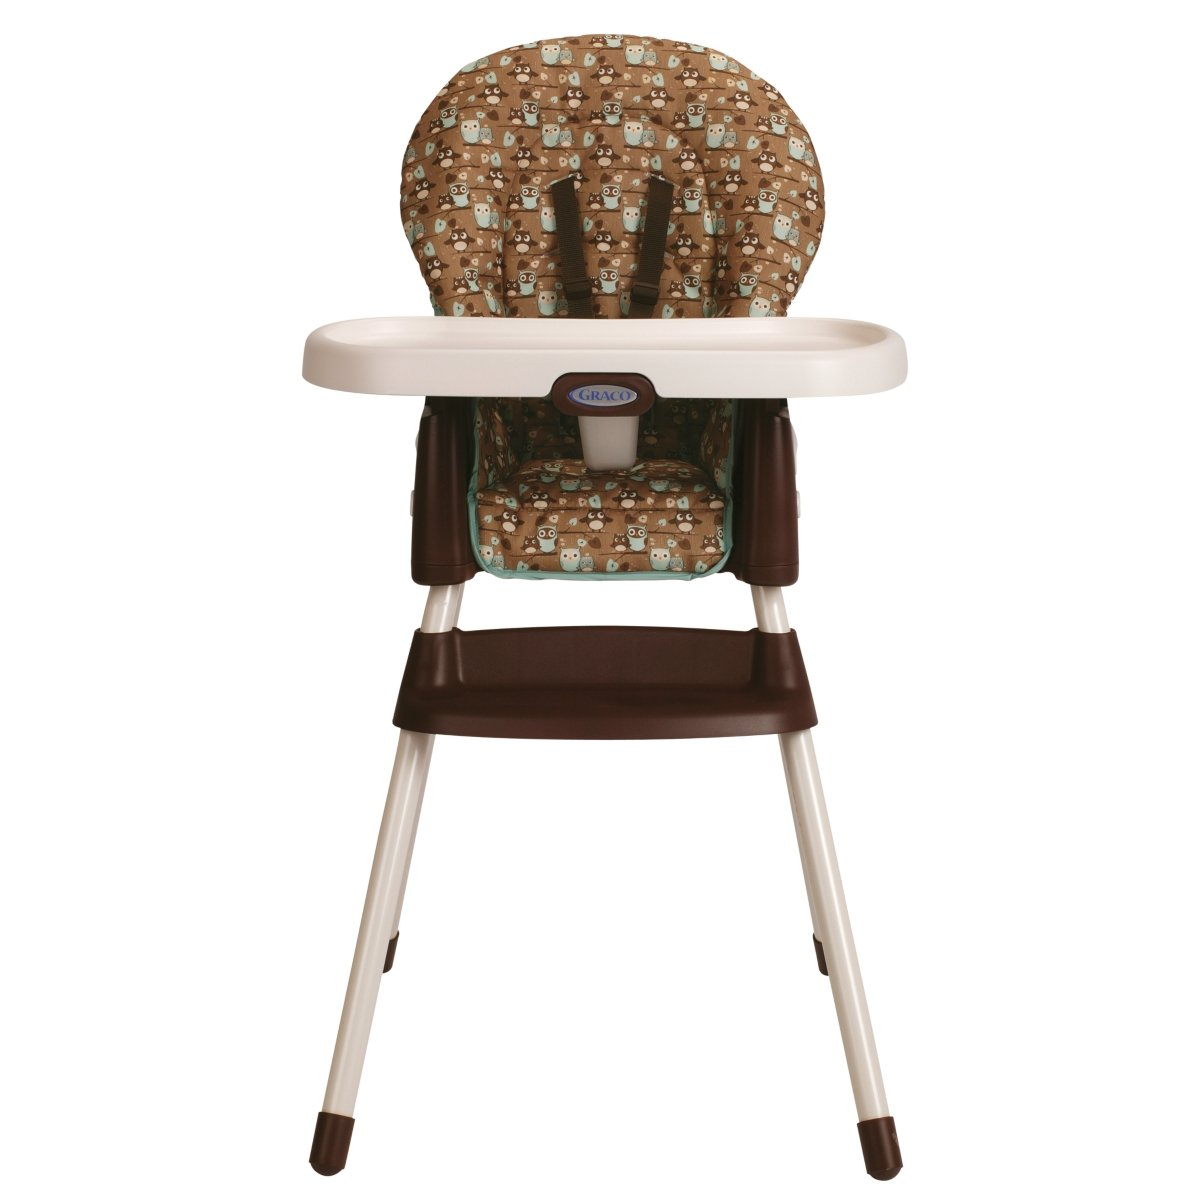 graco simpleswitch highchair and booster little hoot new free shipping ebay. Black Bedroom Furniture Sets. Home Design Ideas